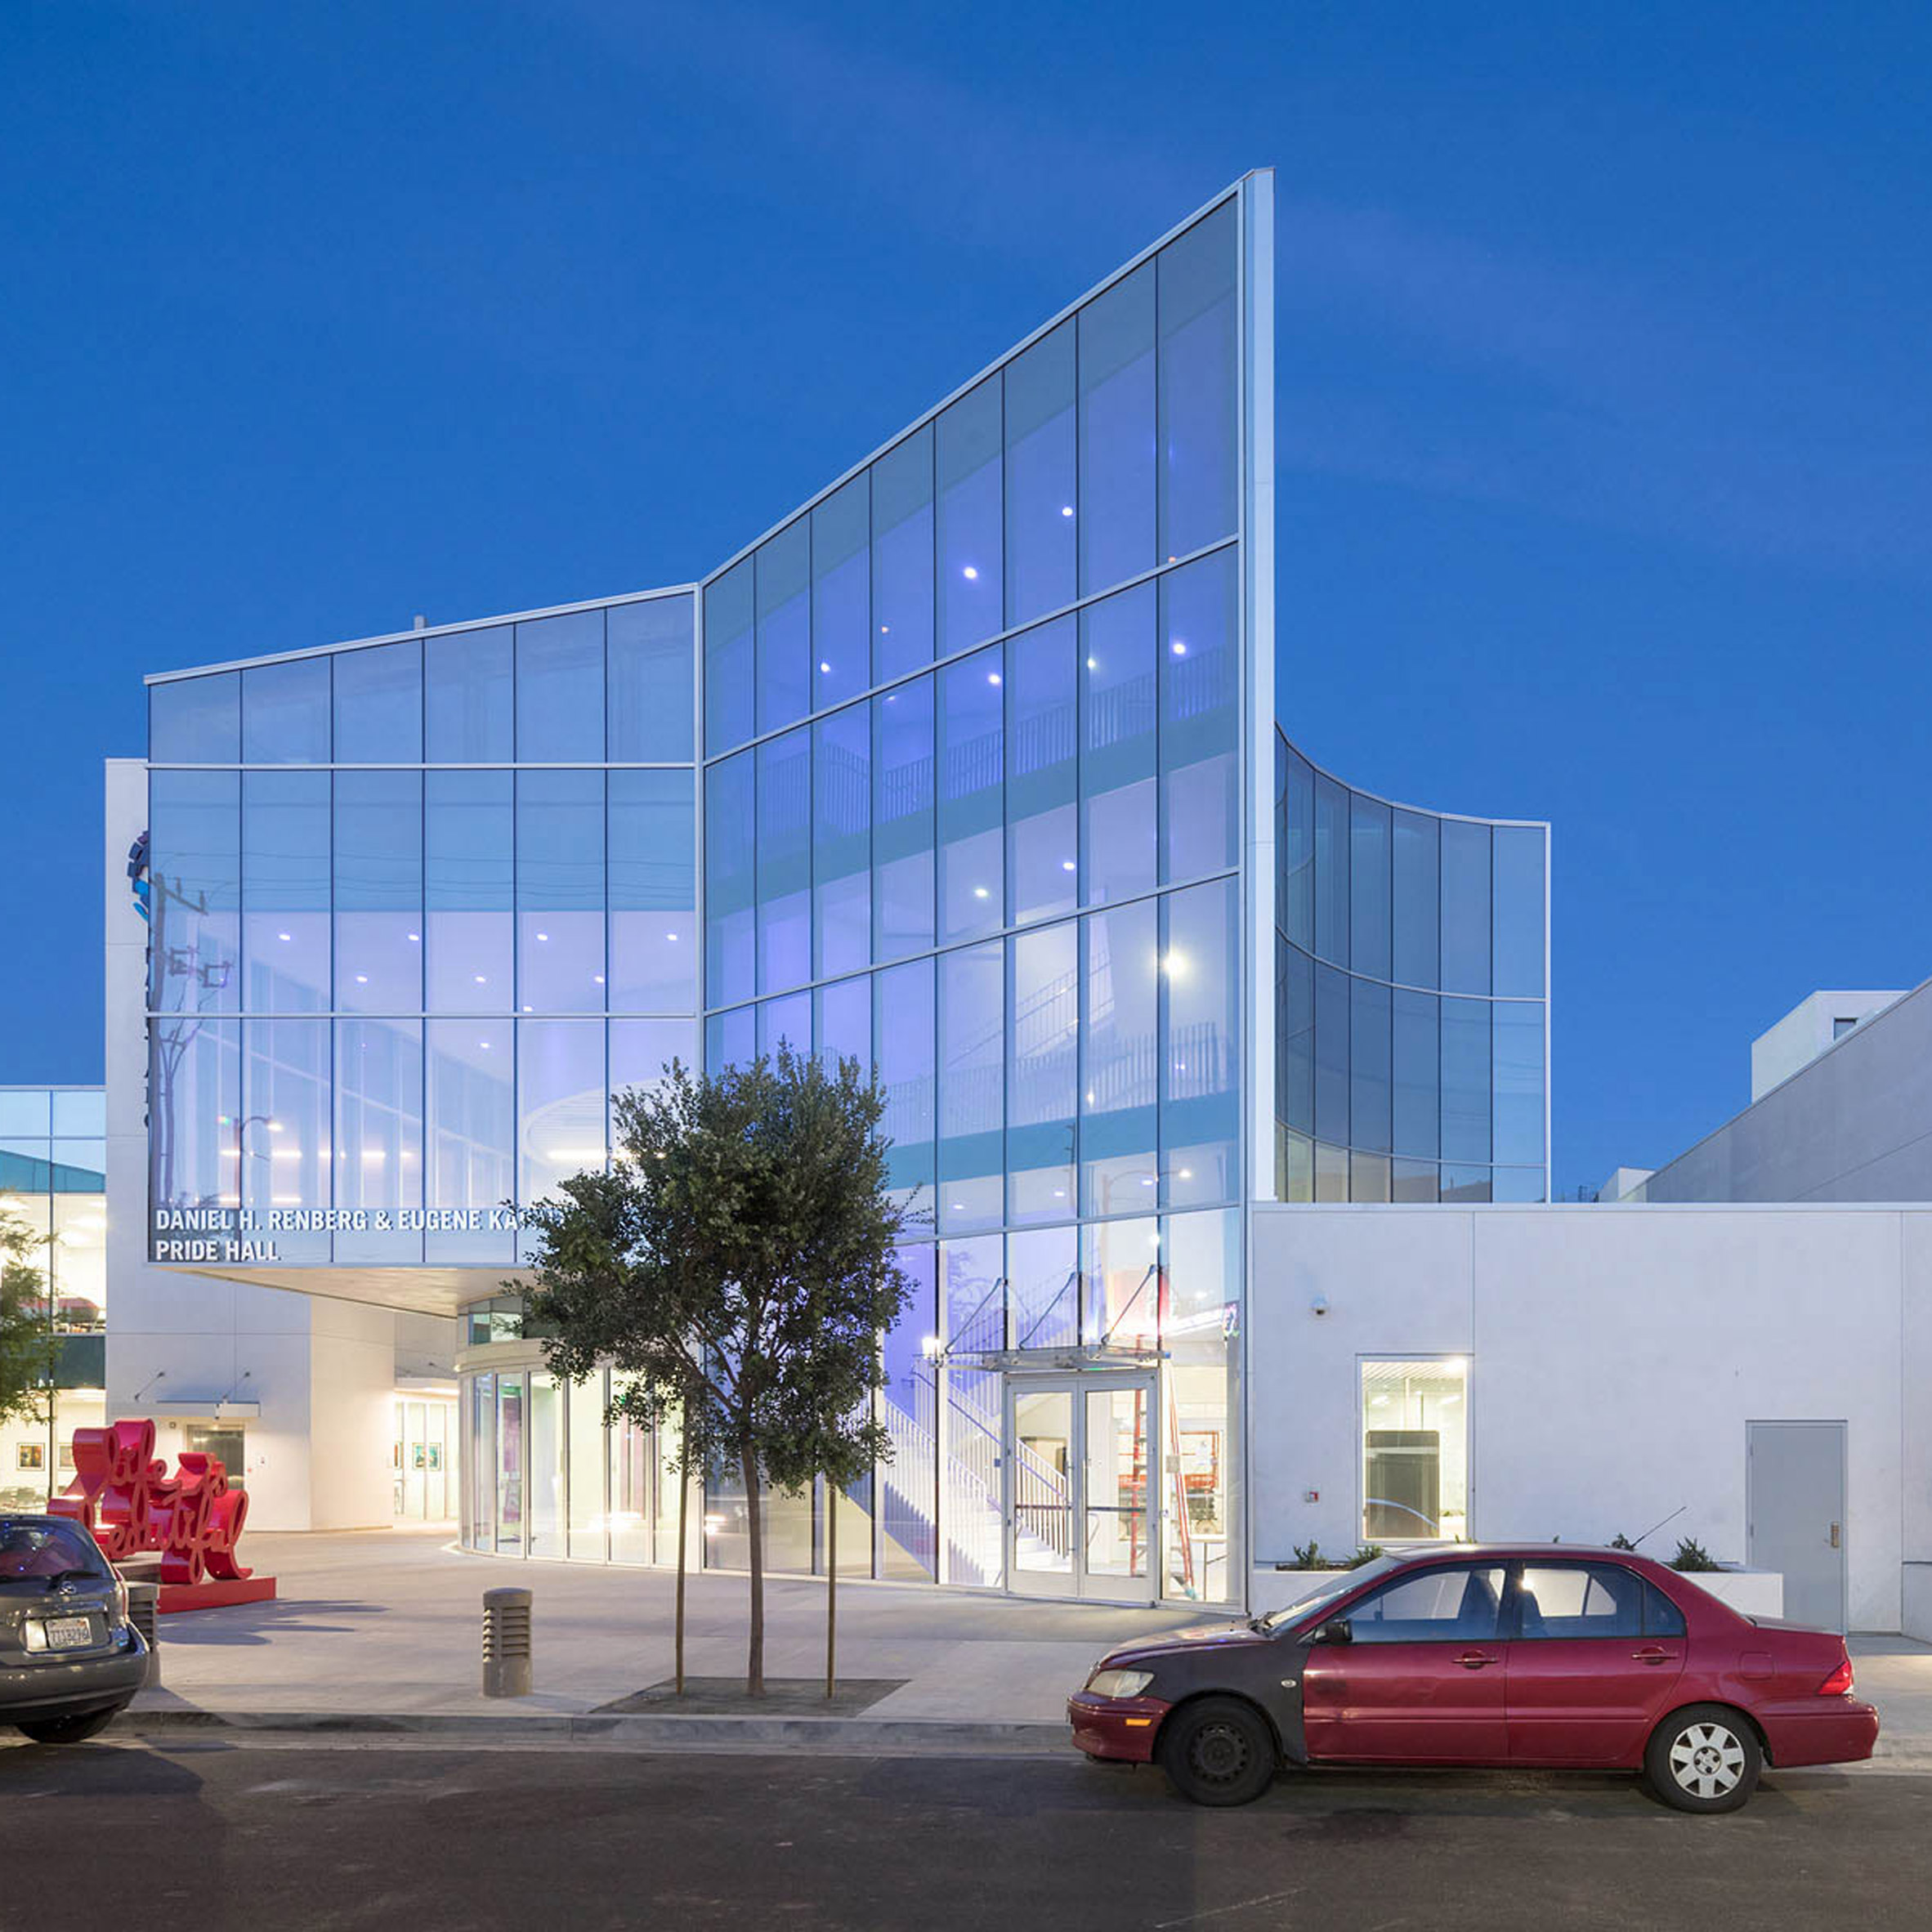 Top 10 US architecture projects of 2019: Los Angeles LGBT Center Anita May Rosenstein Campus by Leong Leong and KFA